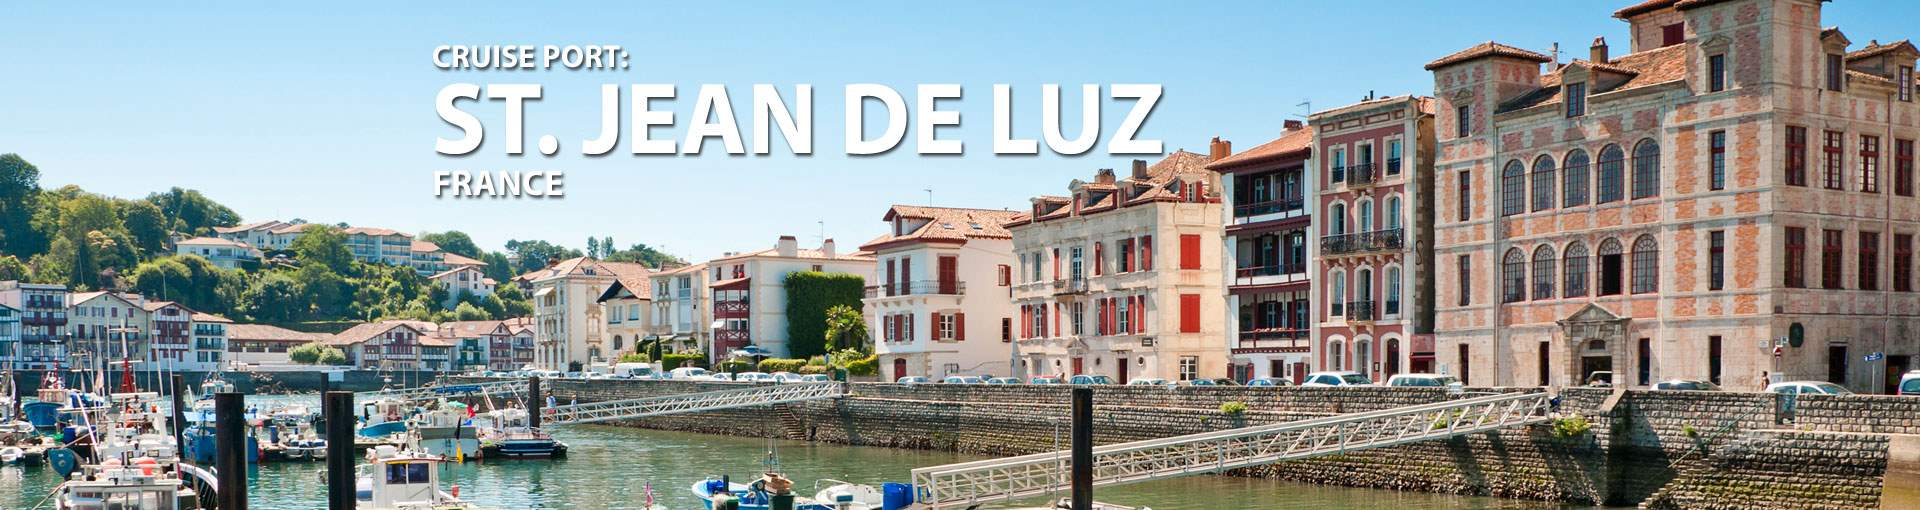 Cruises to St. Jean De Luz, France